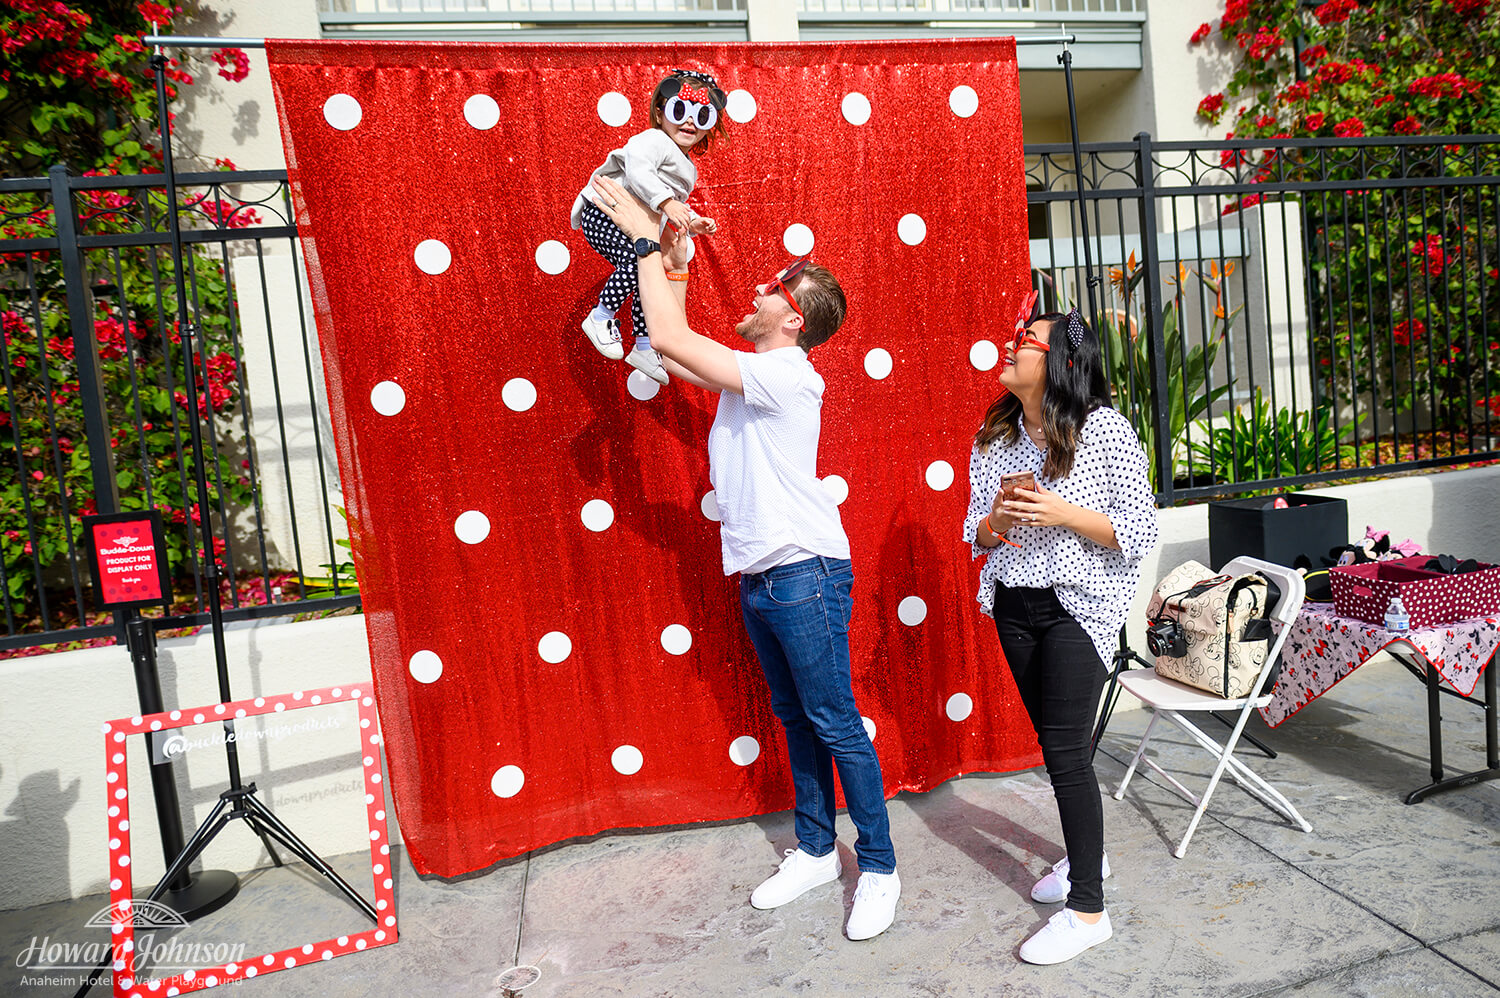 a man holds a little girl in the air in front of a polka dot backdrop while a woman smiles and watches them